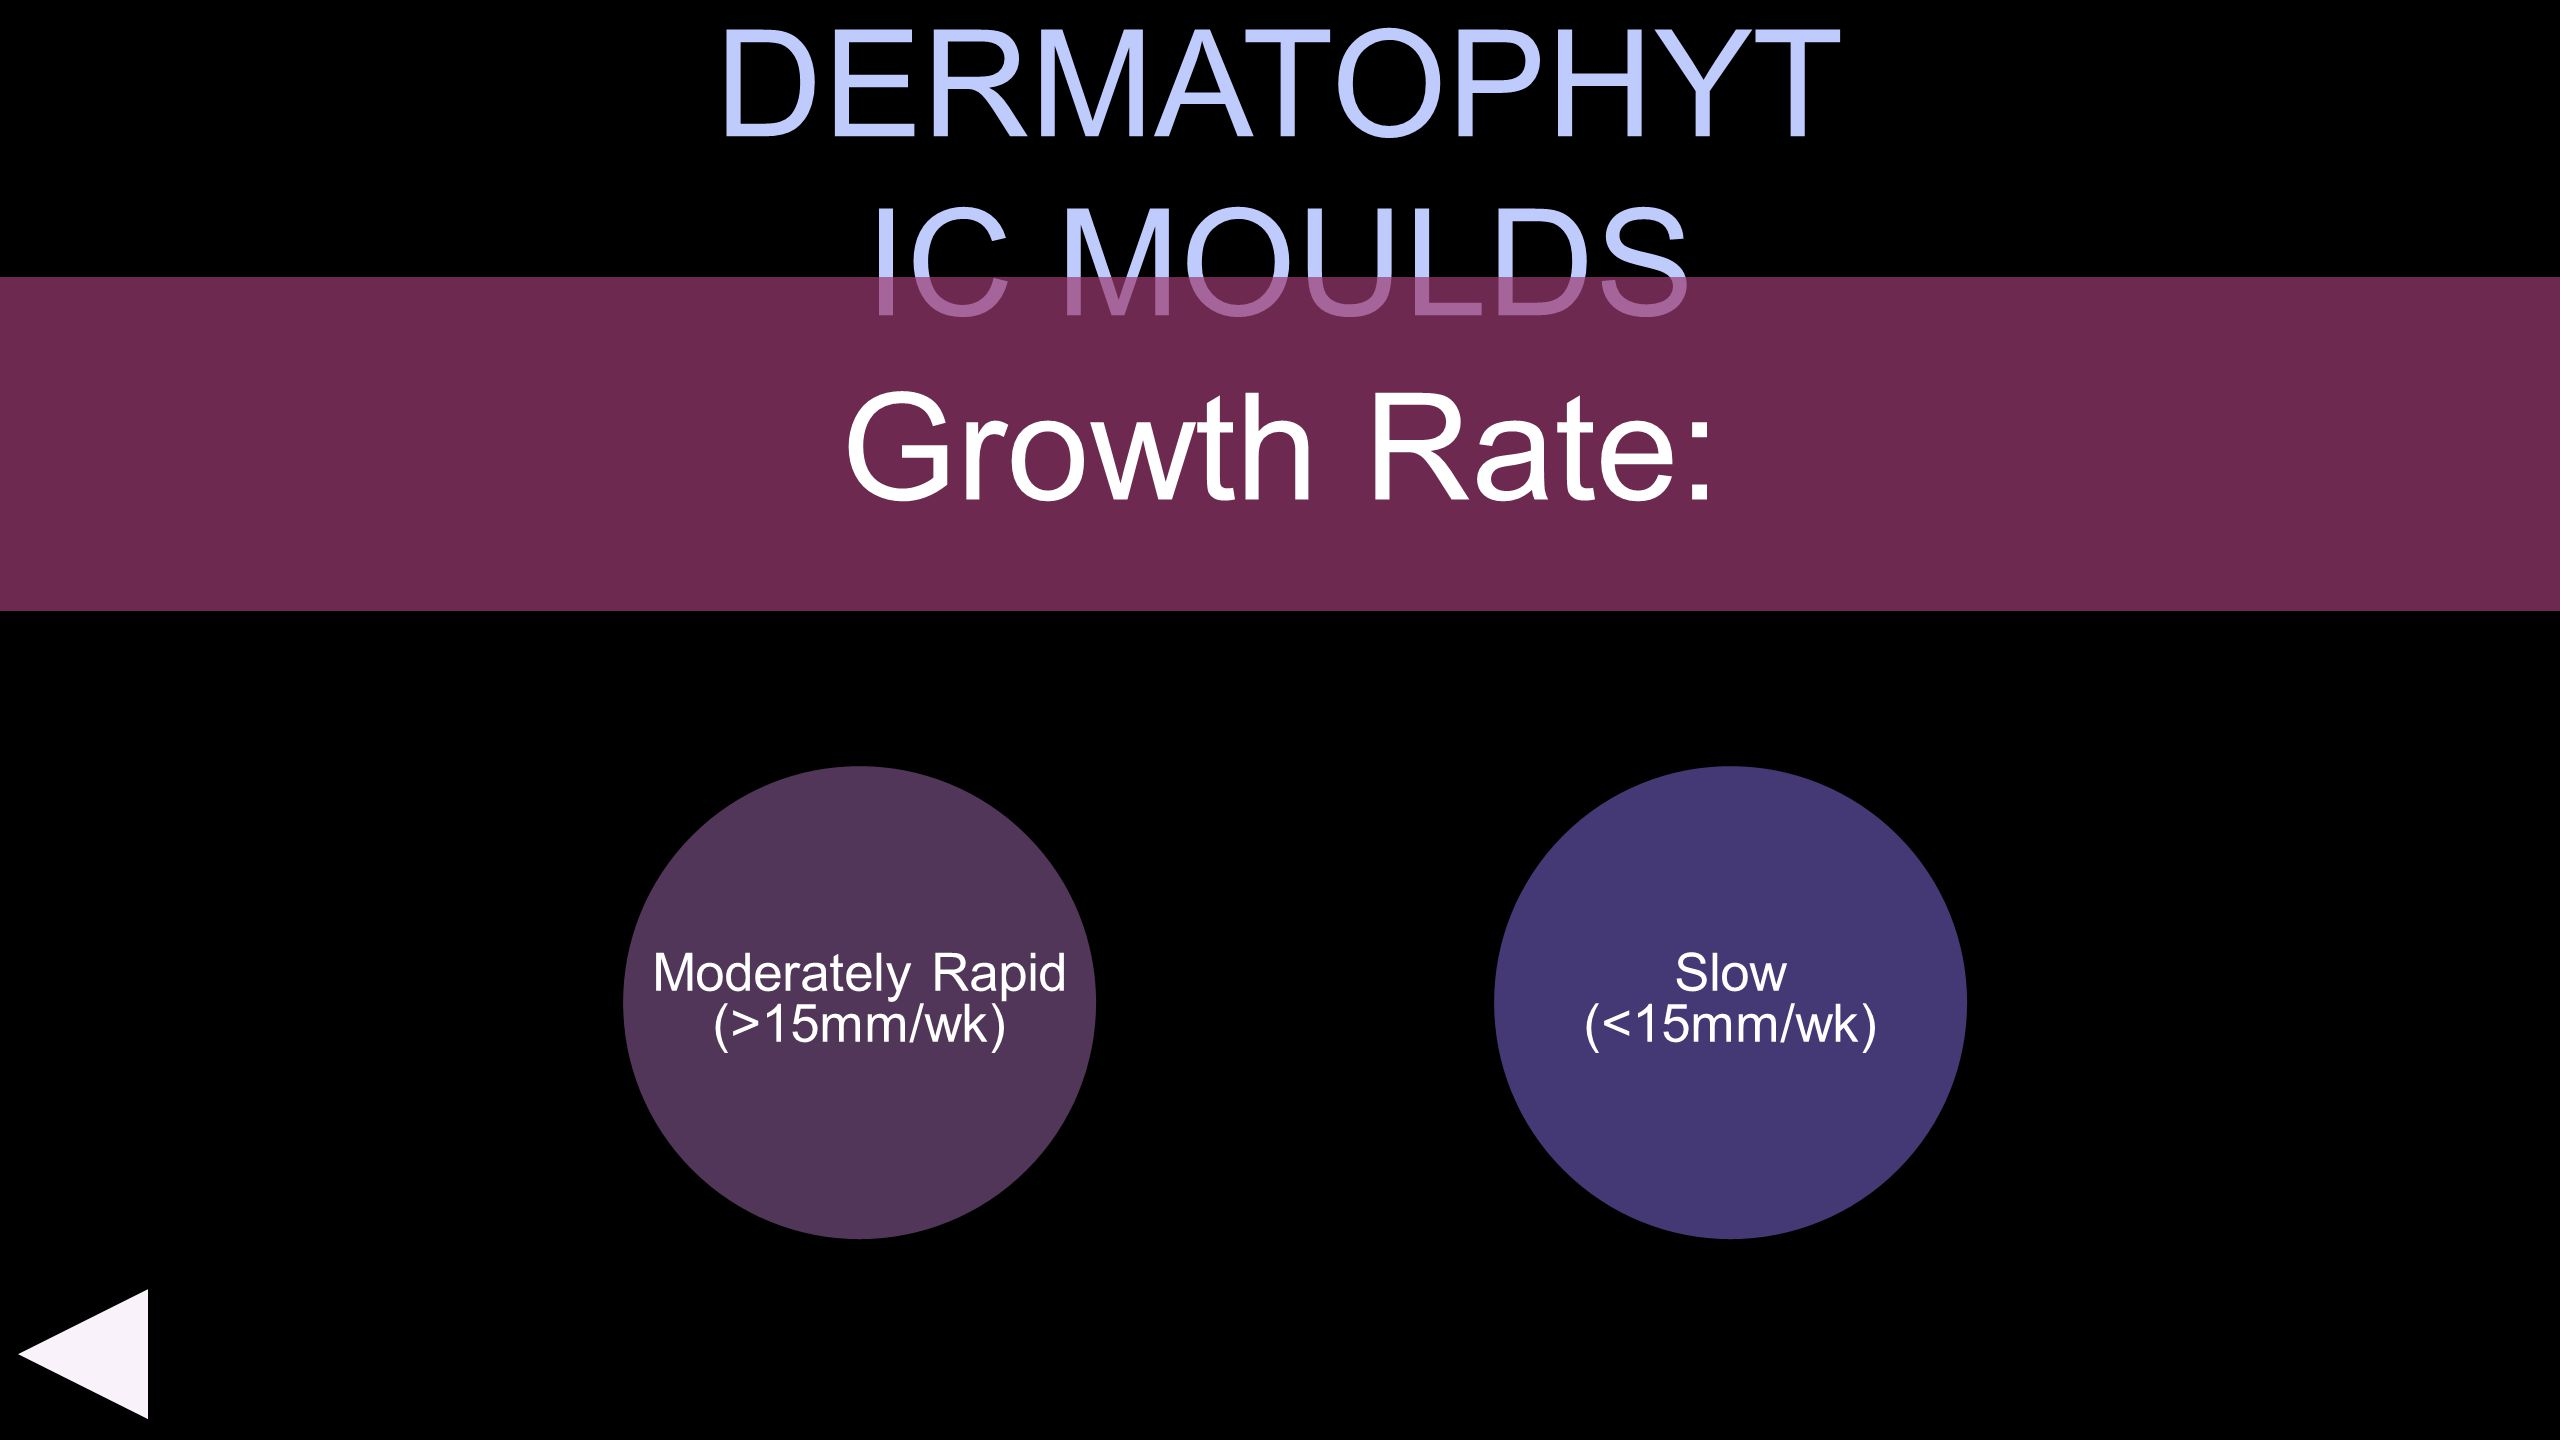 DERMATOPHYTIC MOULDS Growth Rate: Moderately Rapid (>15mm/wk)